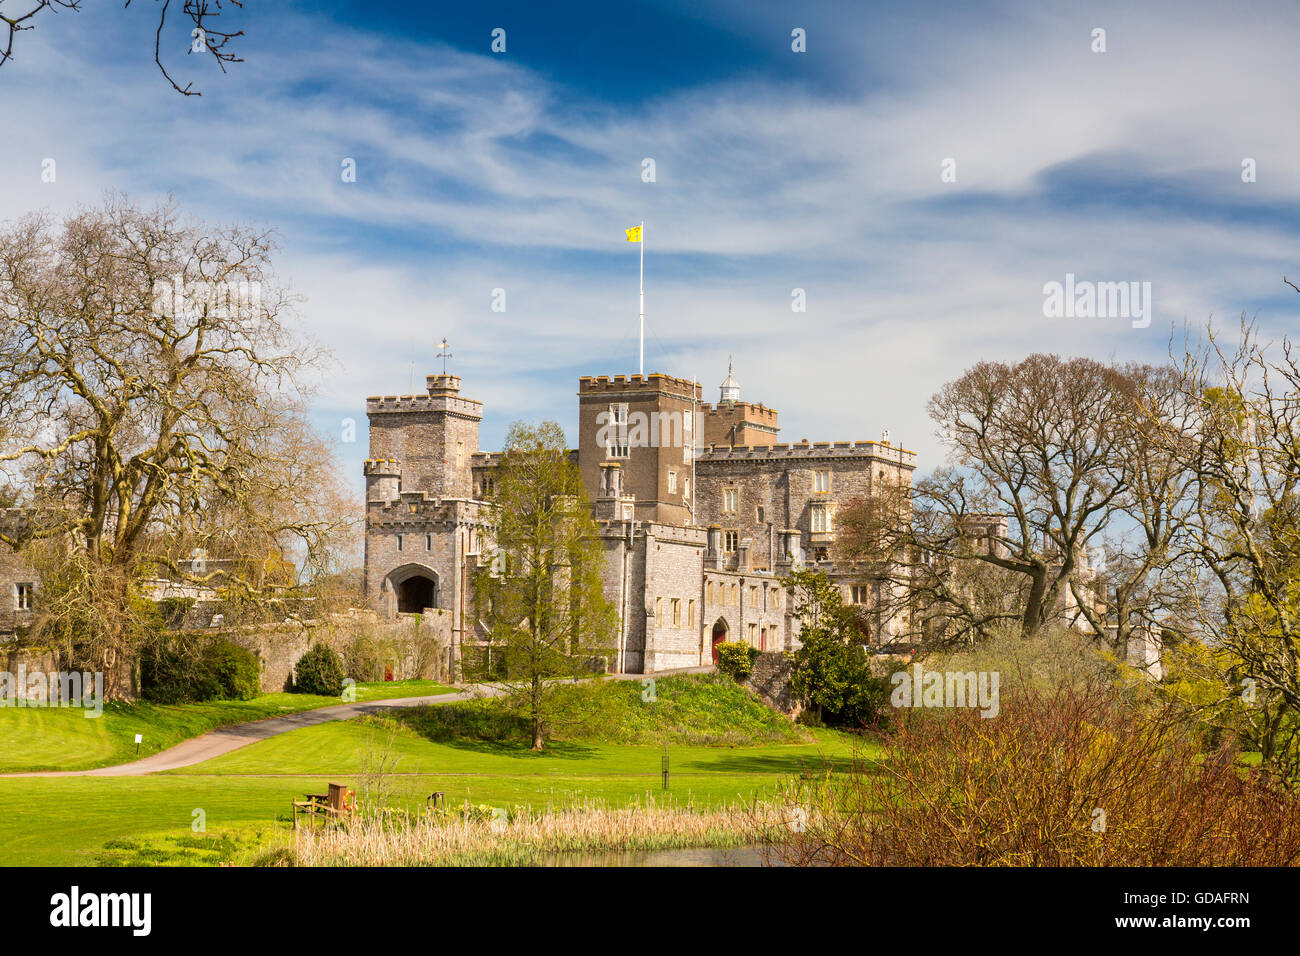 The lake at Powderham Castle, home to the Earls of Devon in Kenton, near Exeter, Devon, England, UK - Stock Image